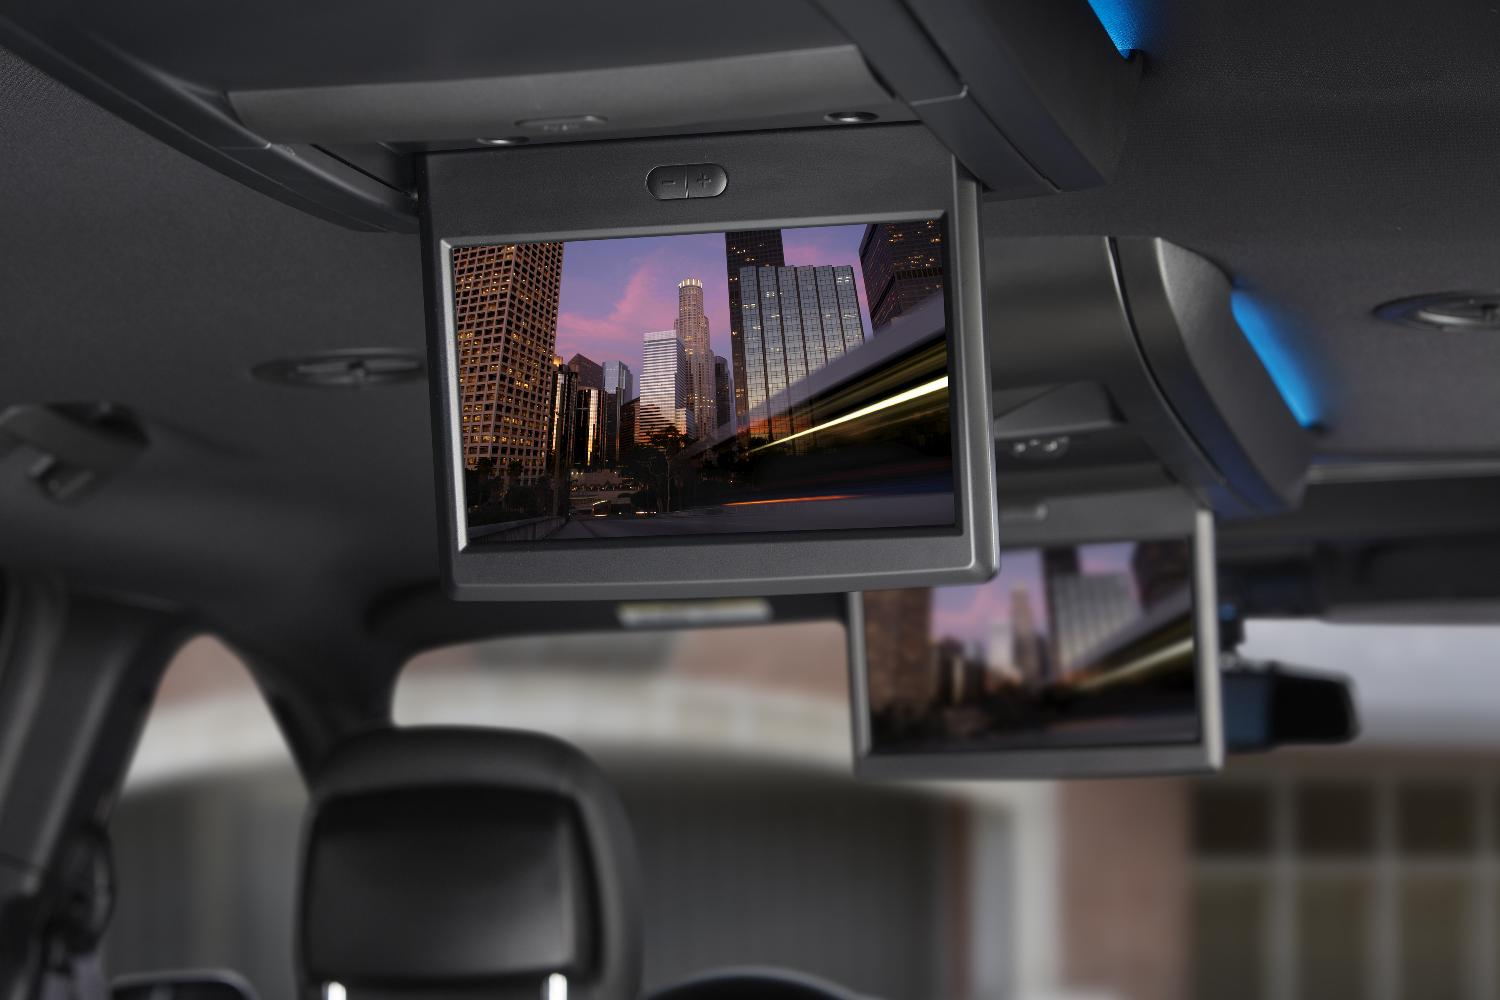 chrysler launches blu ray dvd on minivans autoevolution. Black Bedroom Furniture Sets. Home Design Ideas